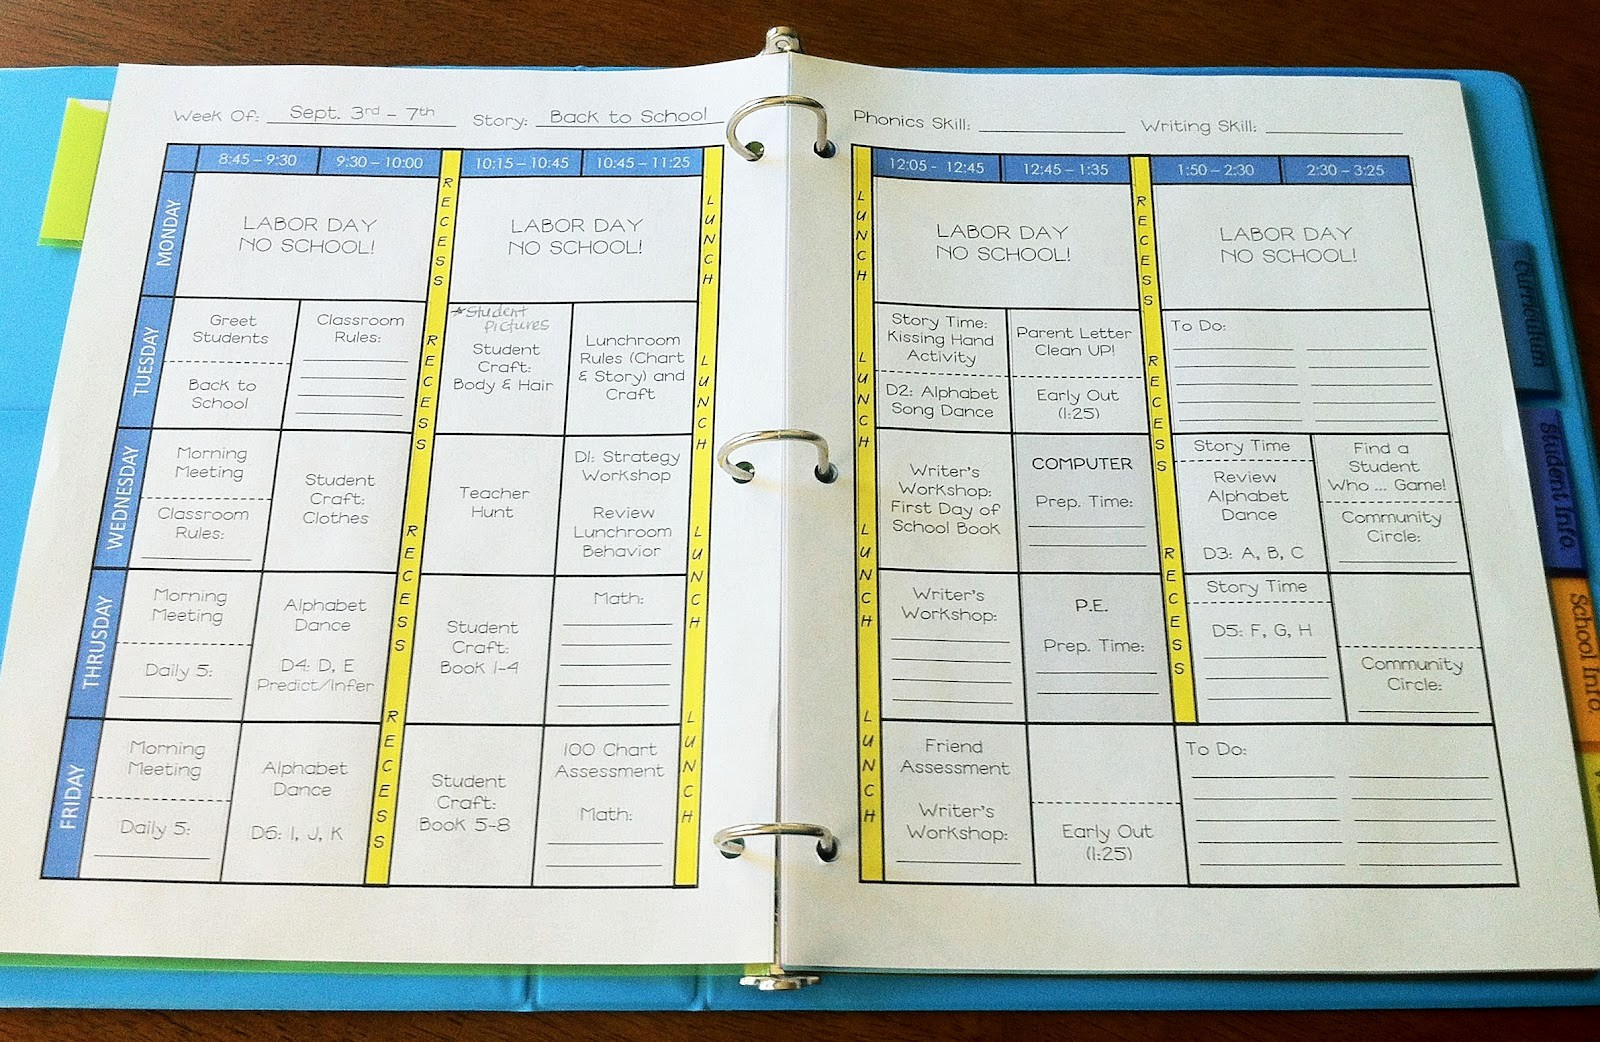 Weekly Planner Template for Teachers Best Of Teacher Weekly Planner Template Templates Data